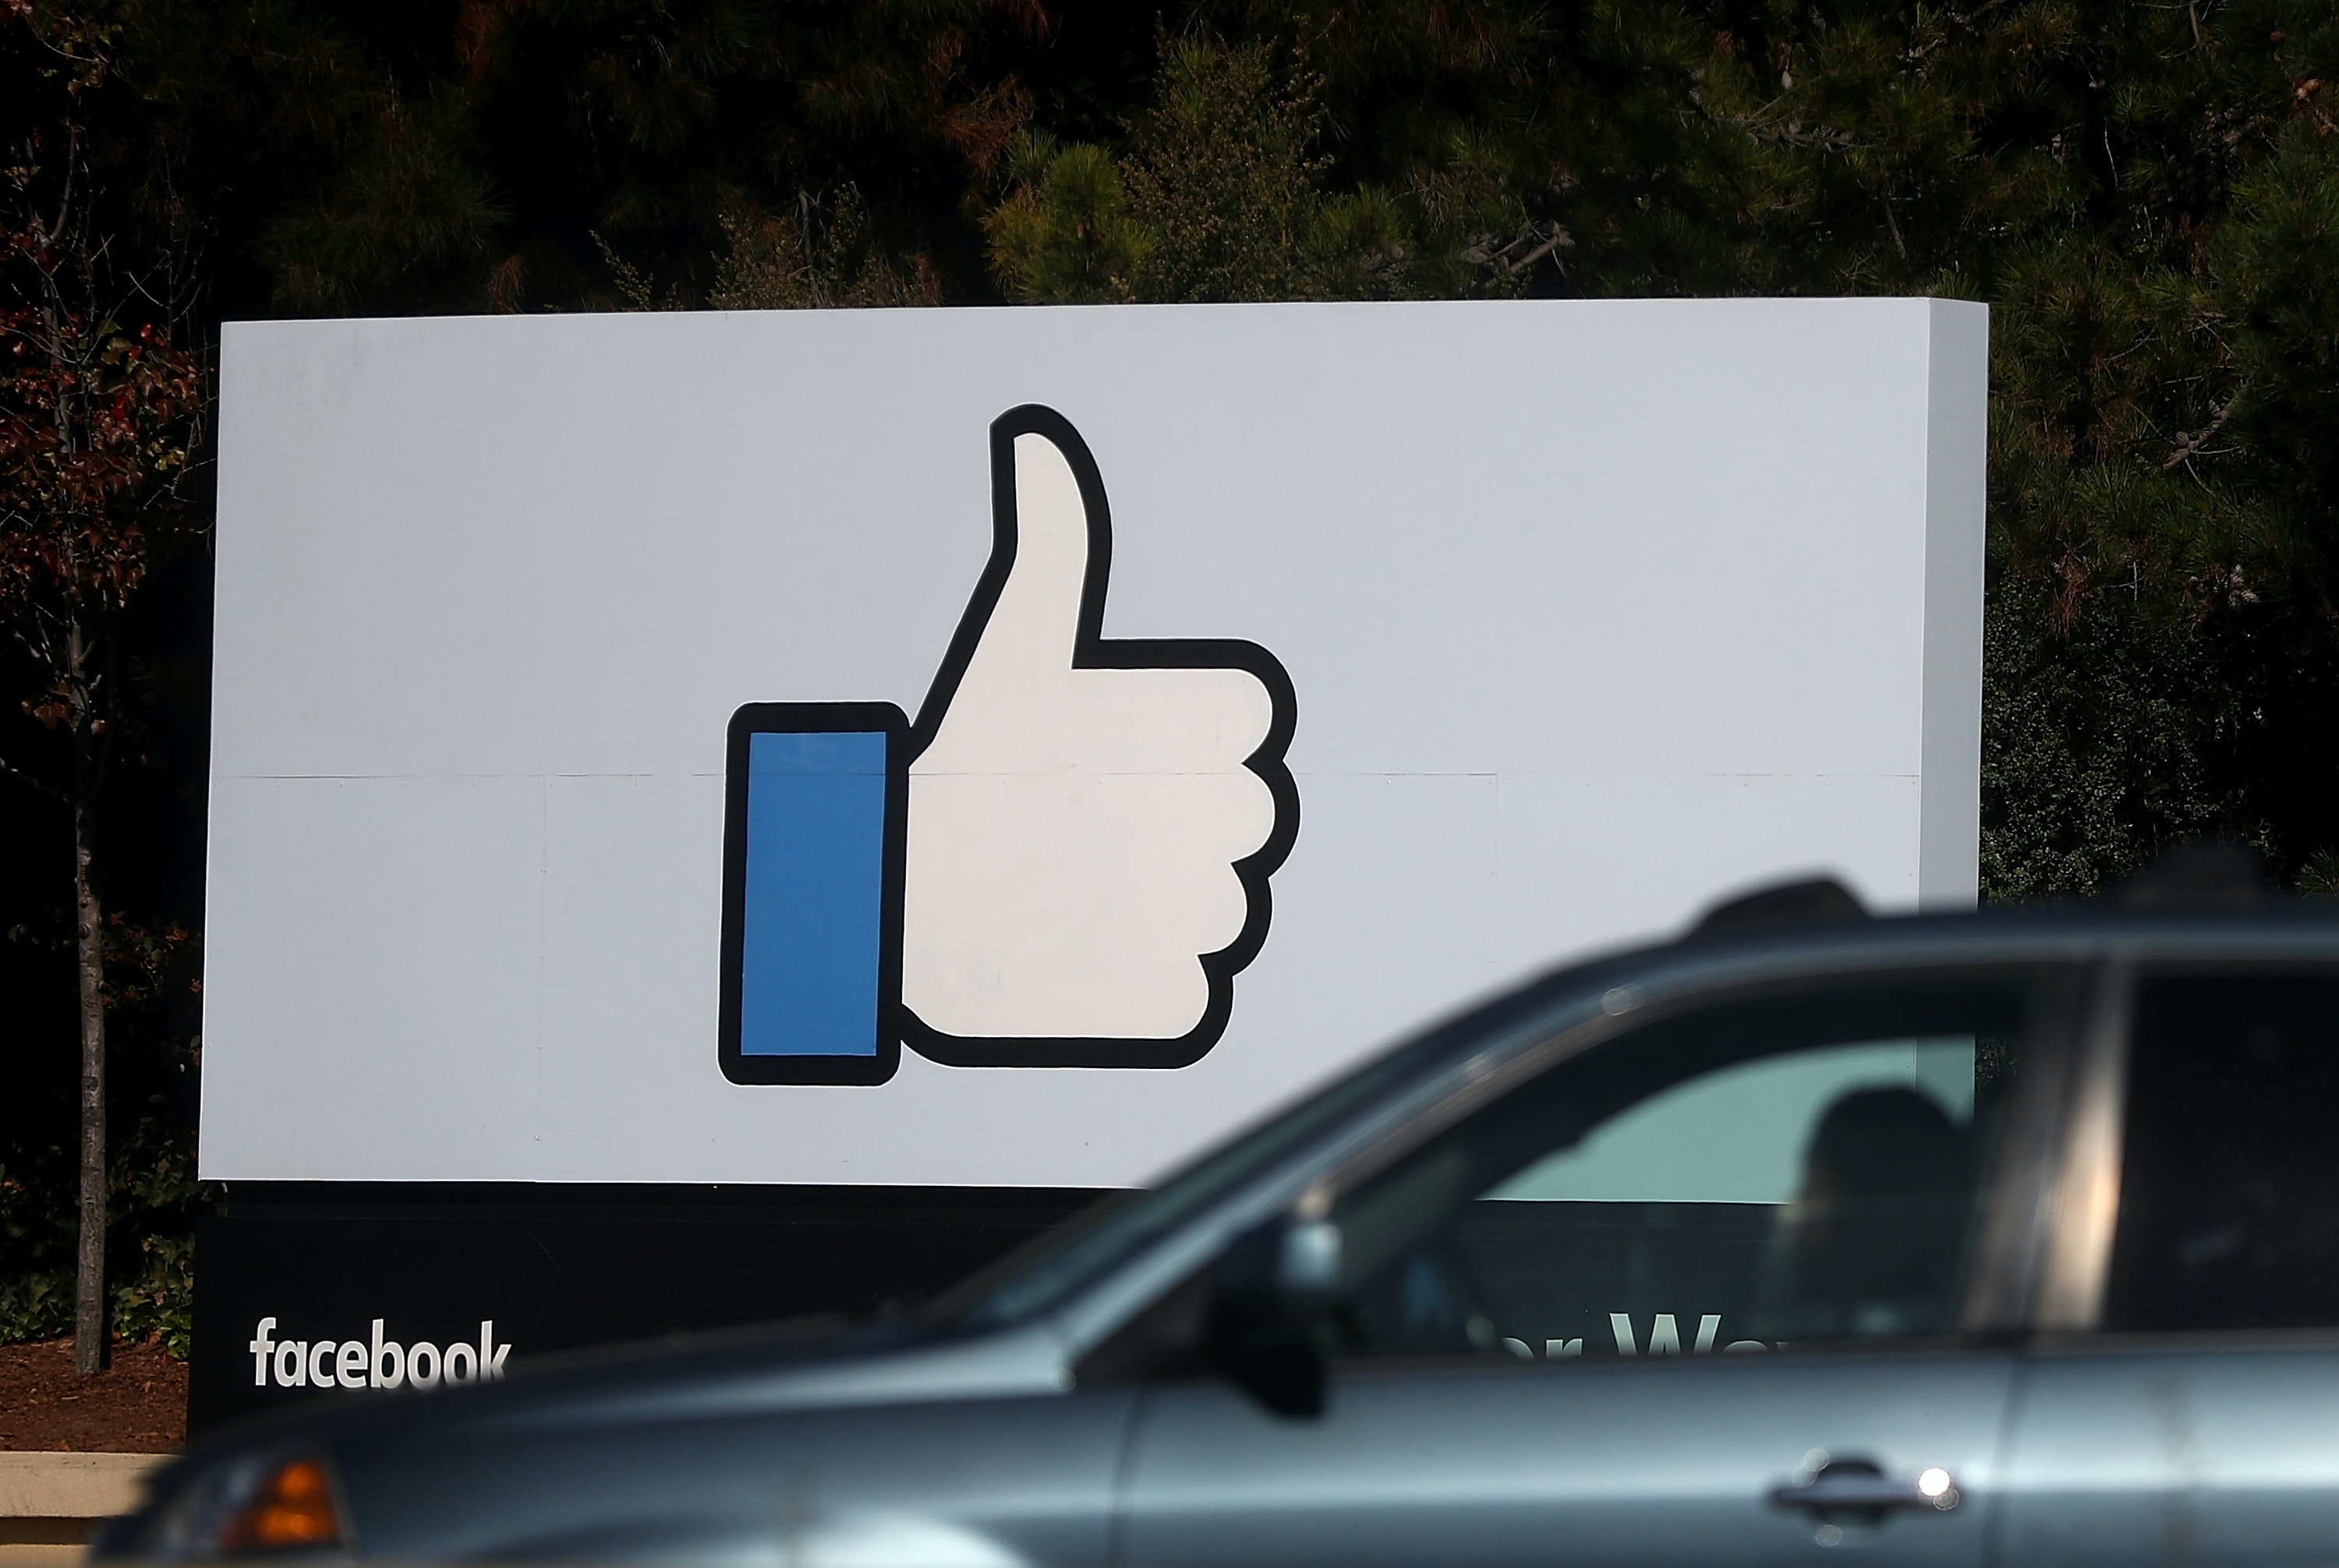 Facebook releases tool to let users see Russian content they've interacted with